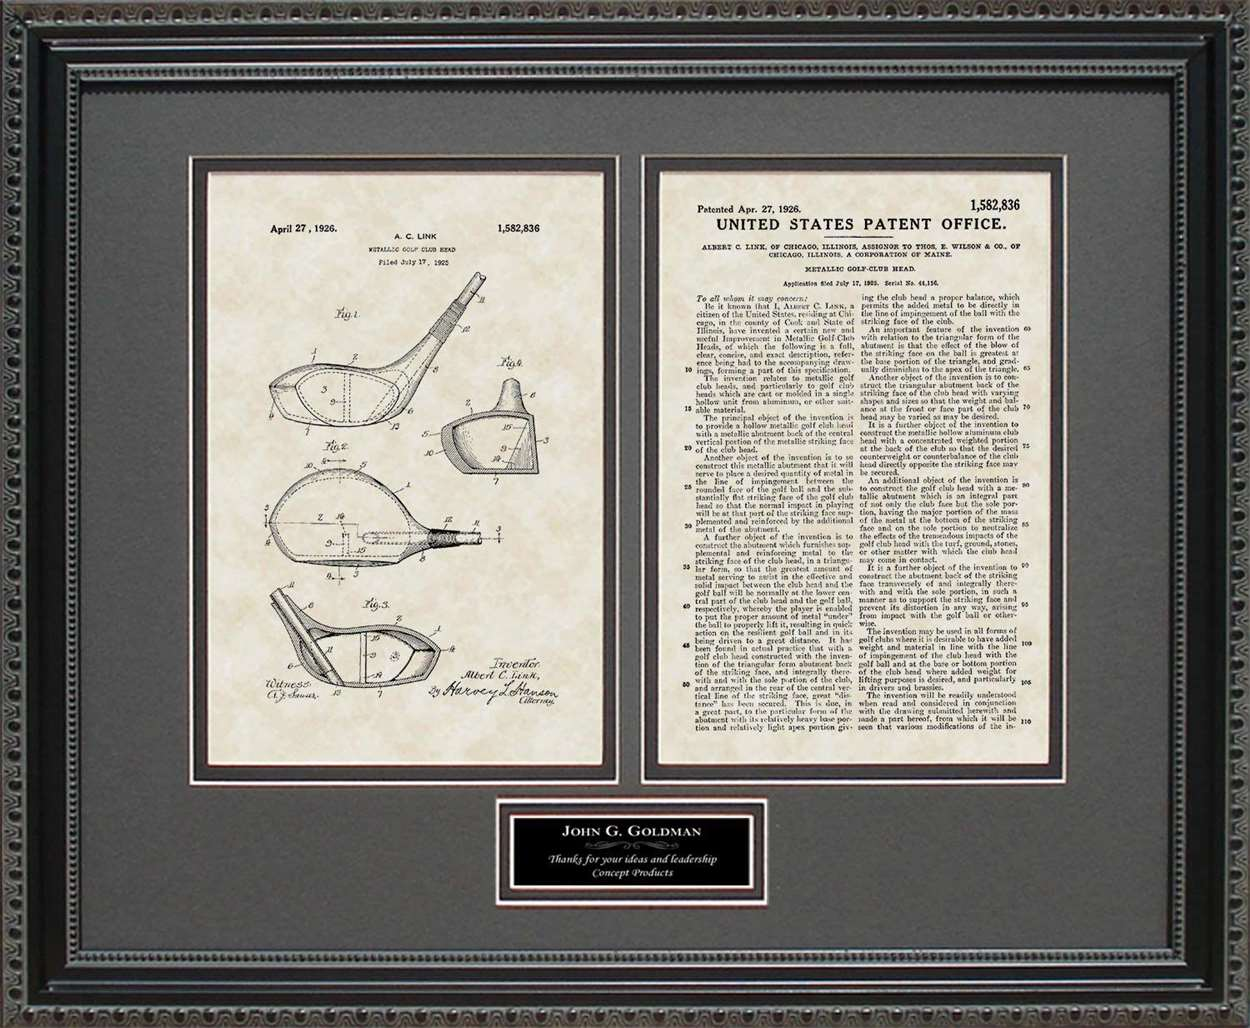 Personalized Golf Driver Patent, Art & Copy, Link, 1926